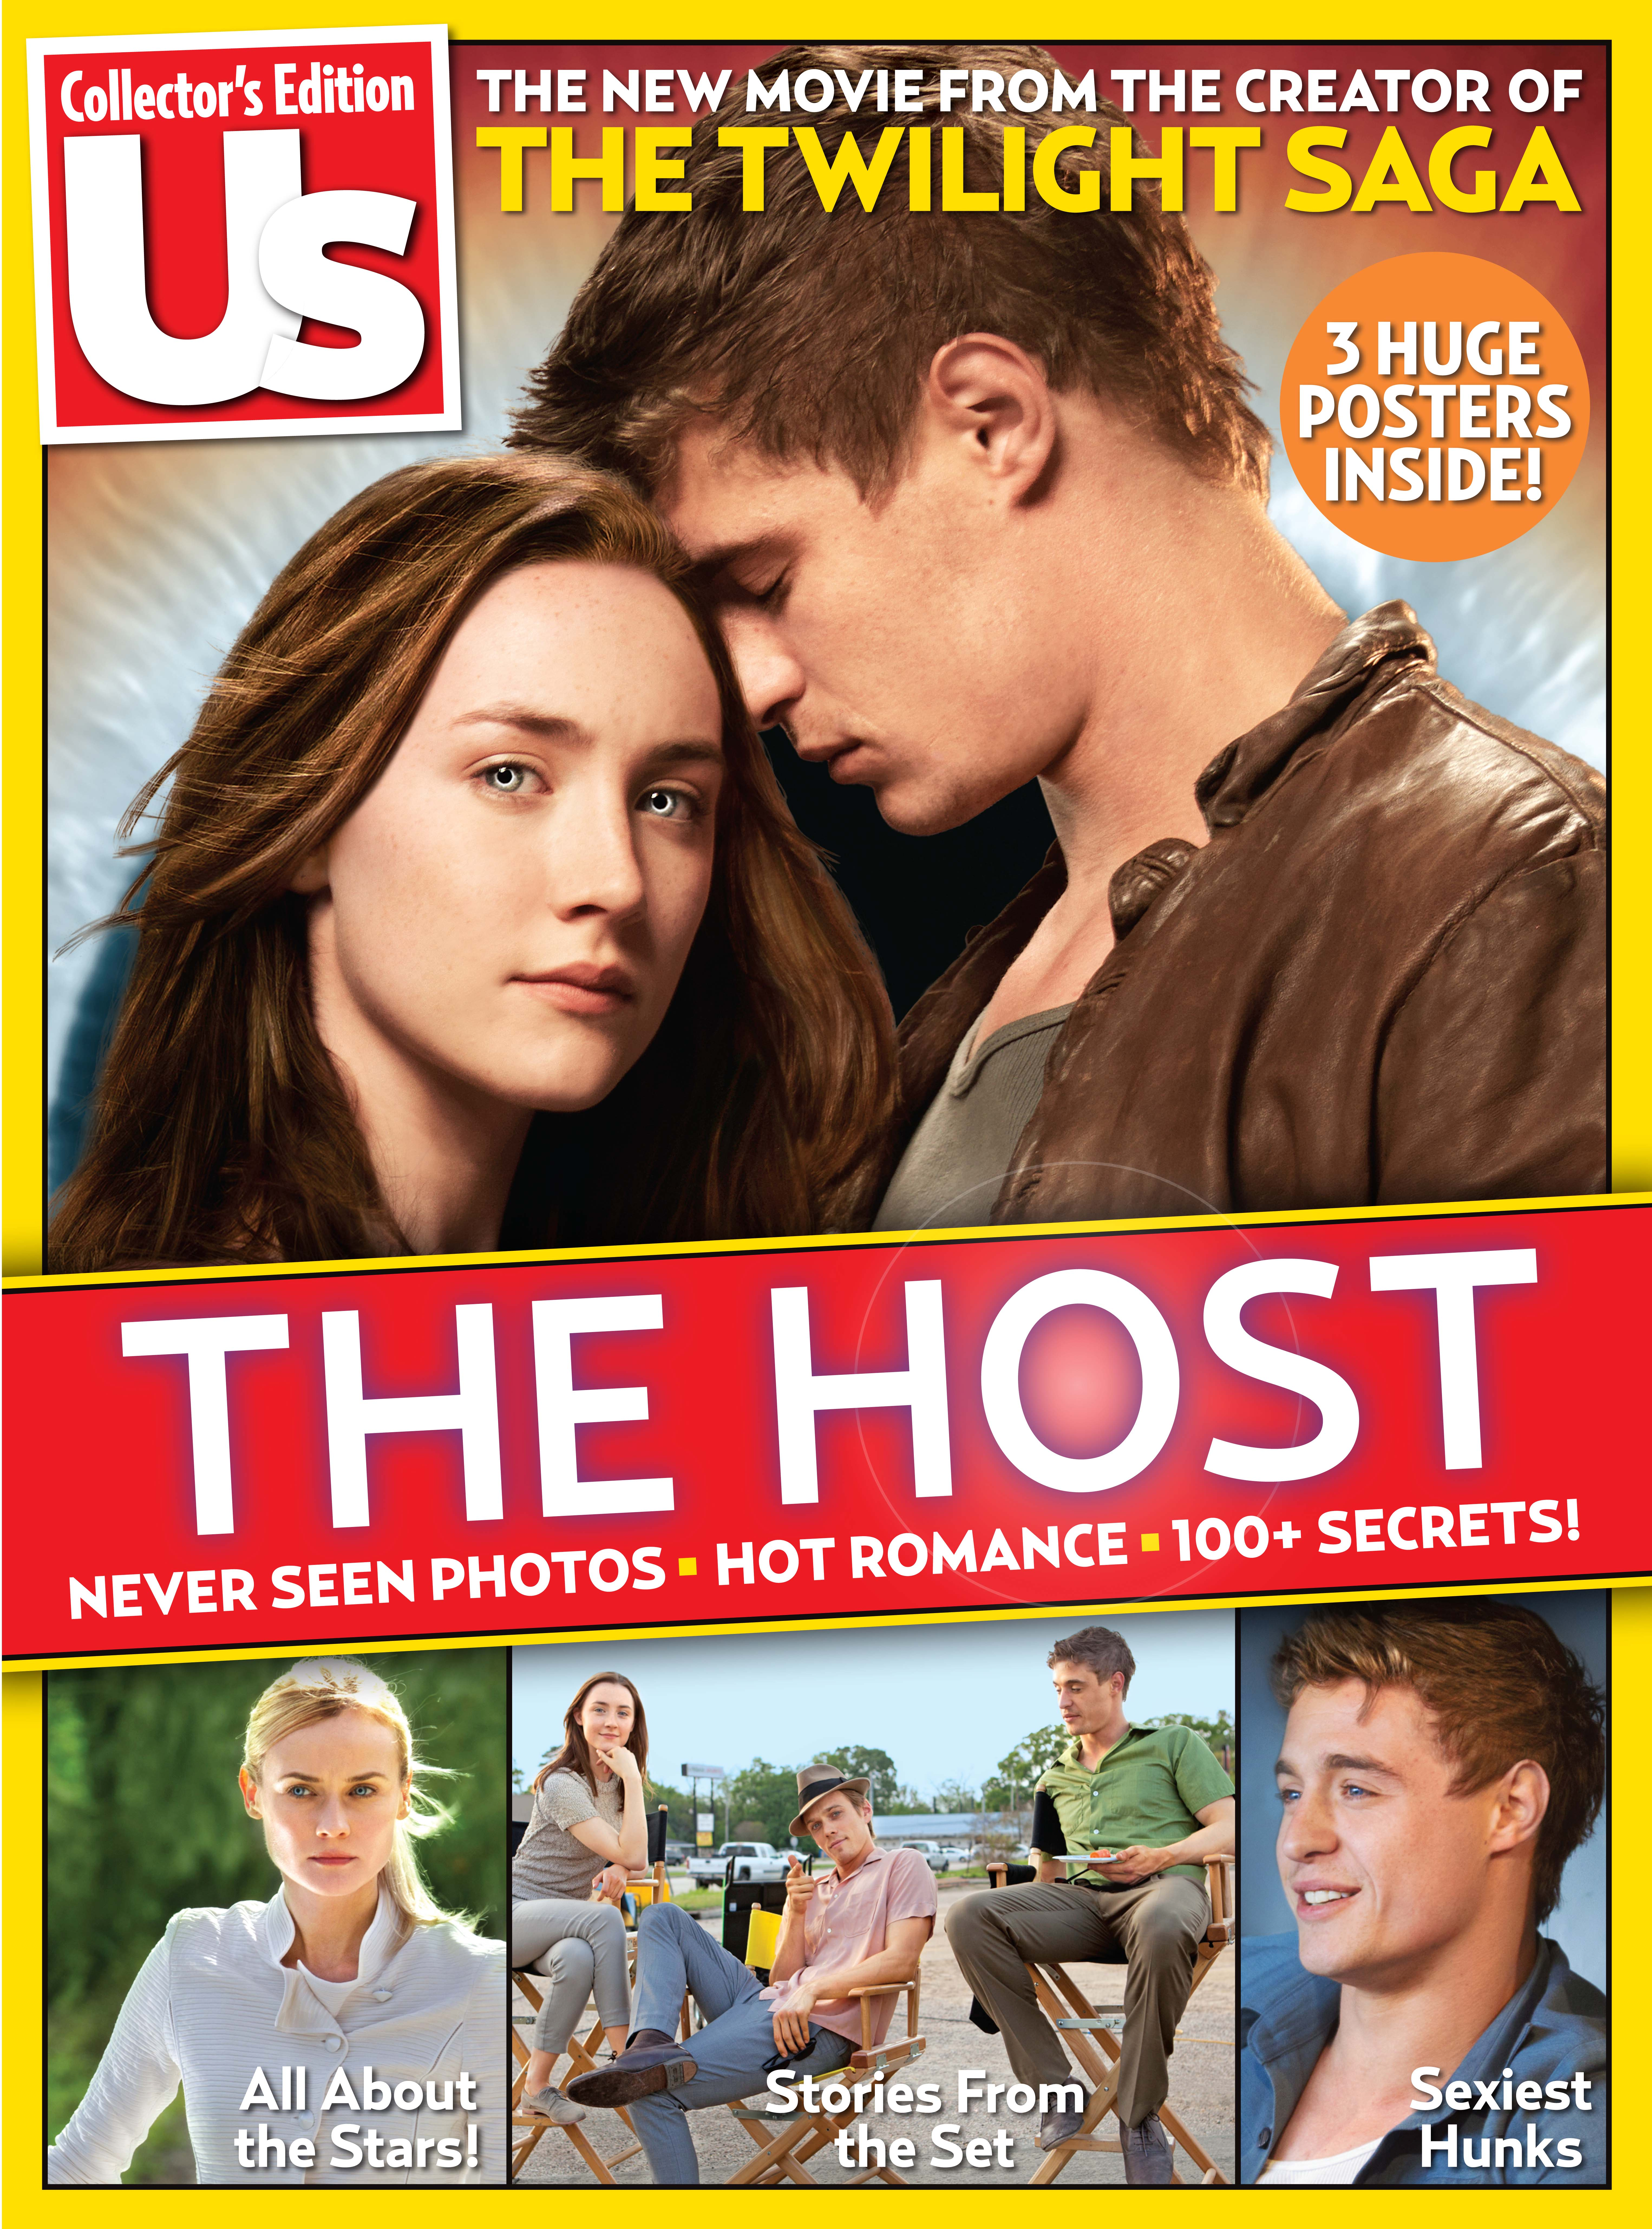 The Host Graces The Cover Of US Magazine